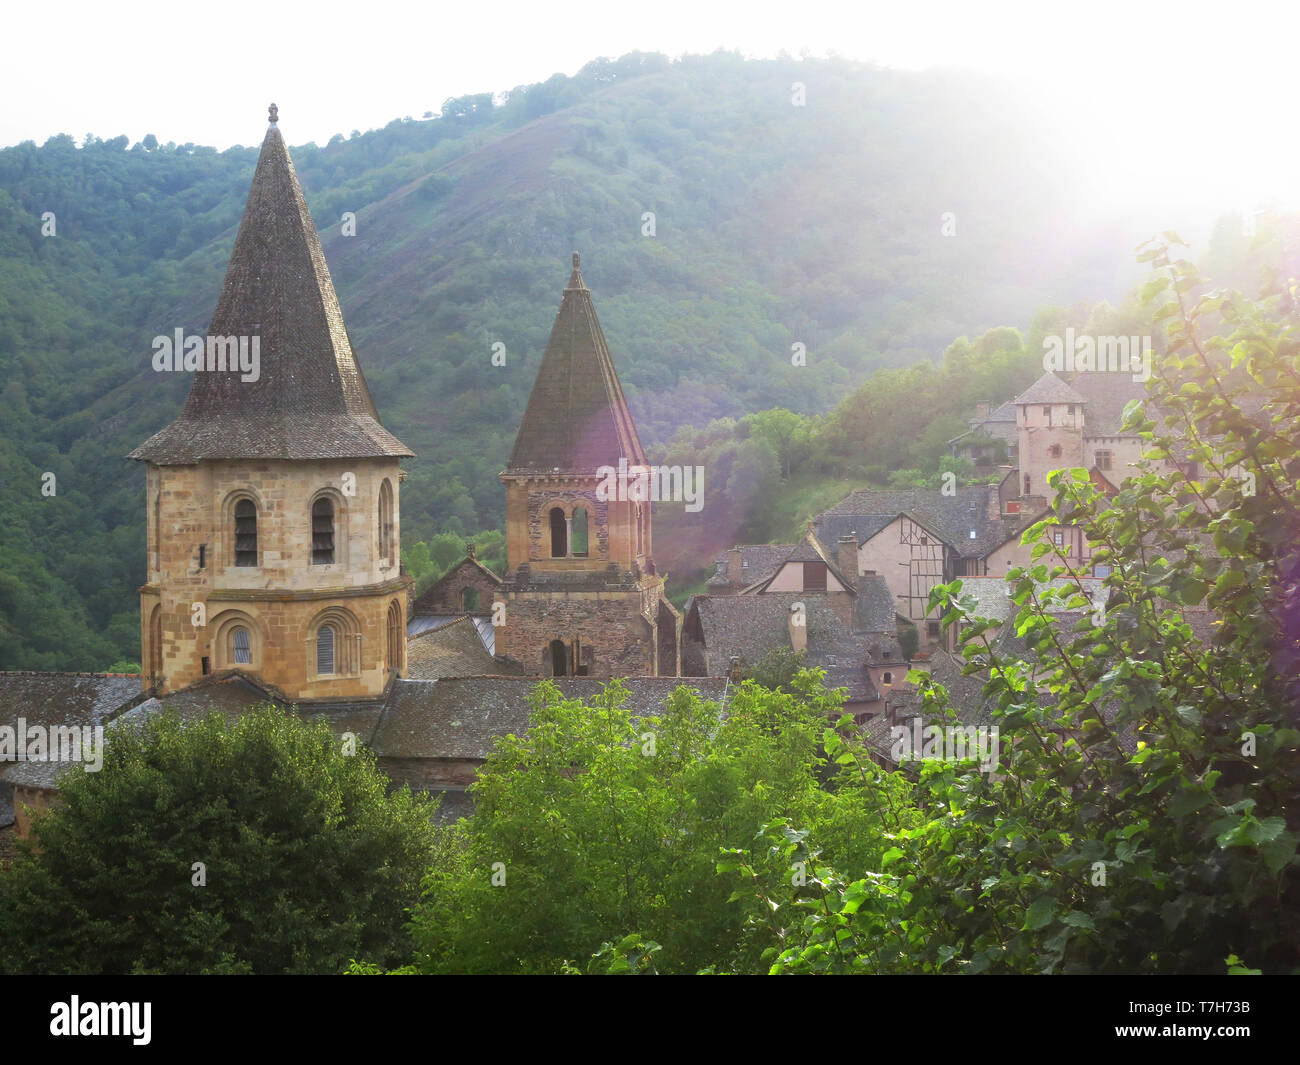 Conques, historic town along the Via Podiensis, also know as Le Puy Route, in southern France. Next to Abbey-Church of Saint-Foy. - Stock Image